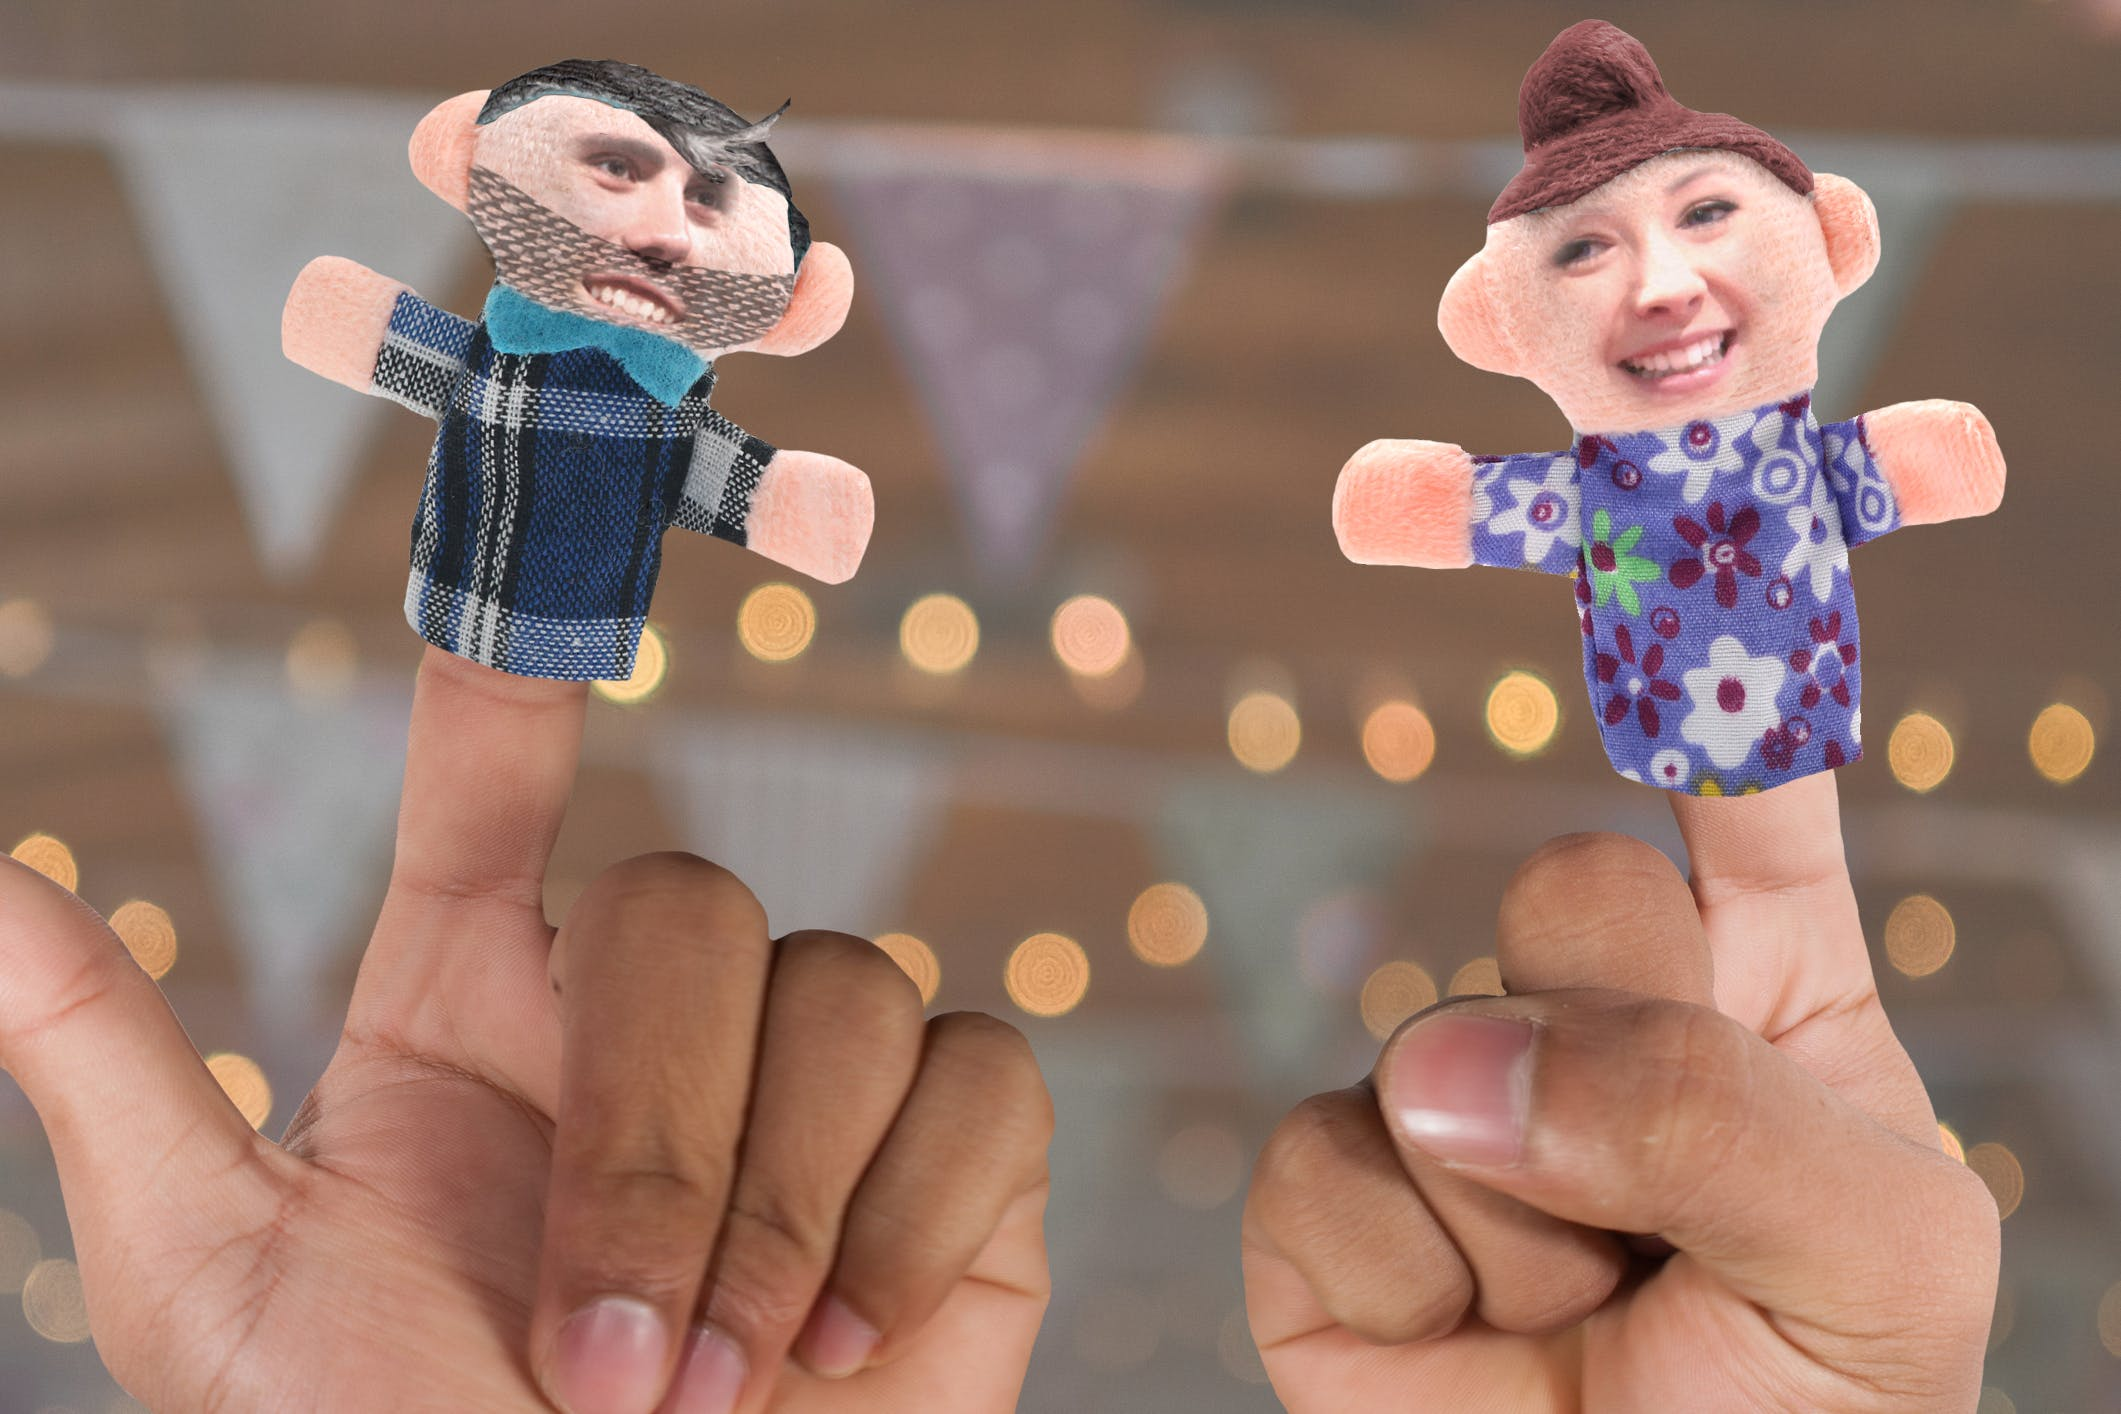 Zoella and Alfie Deyes as finger puppets